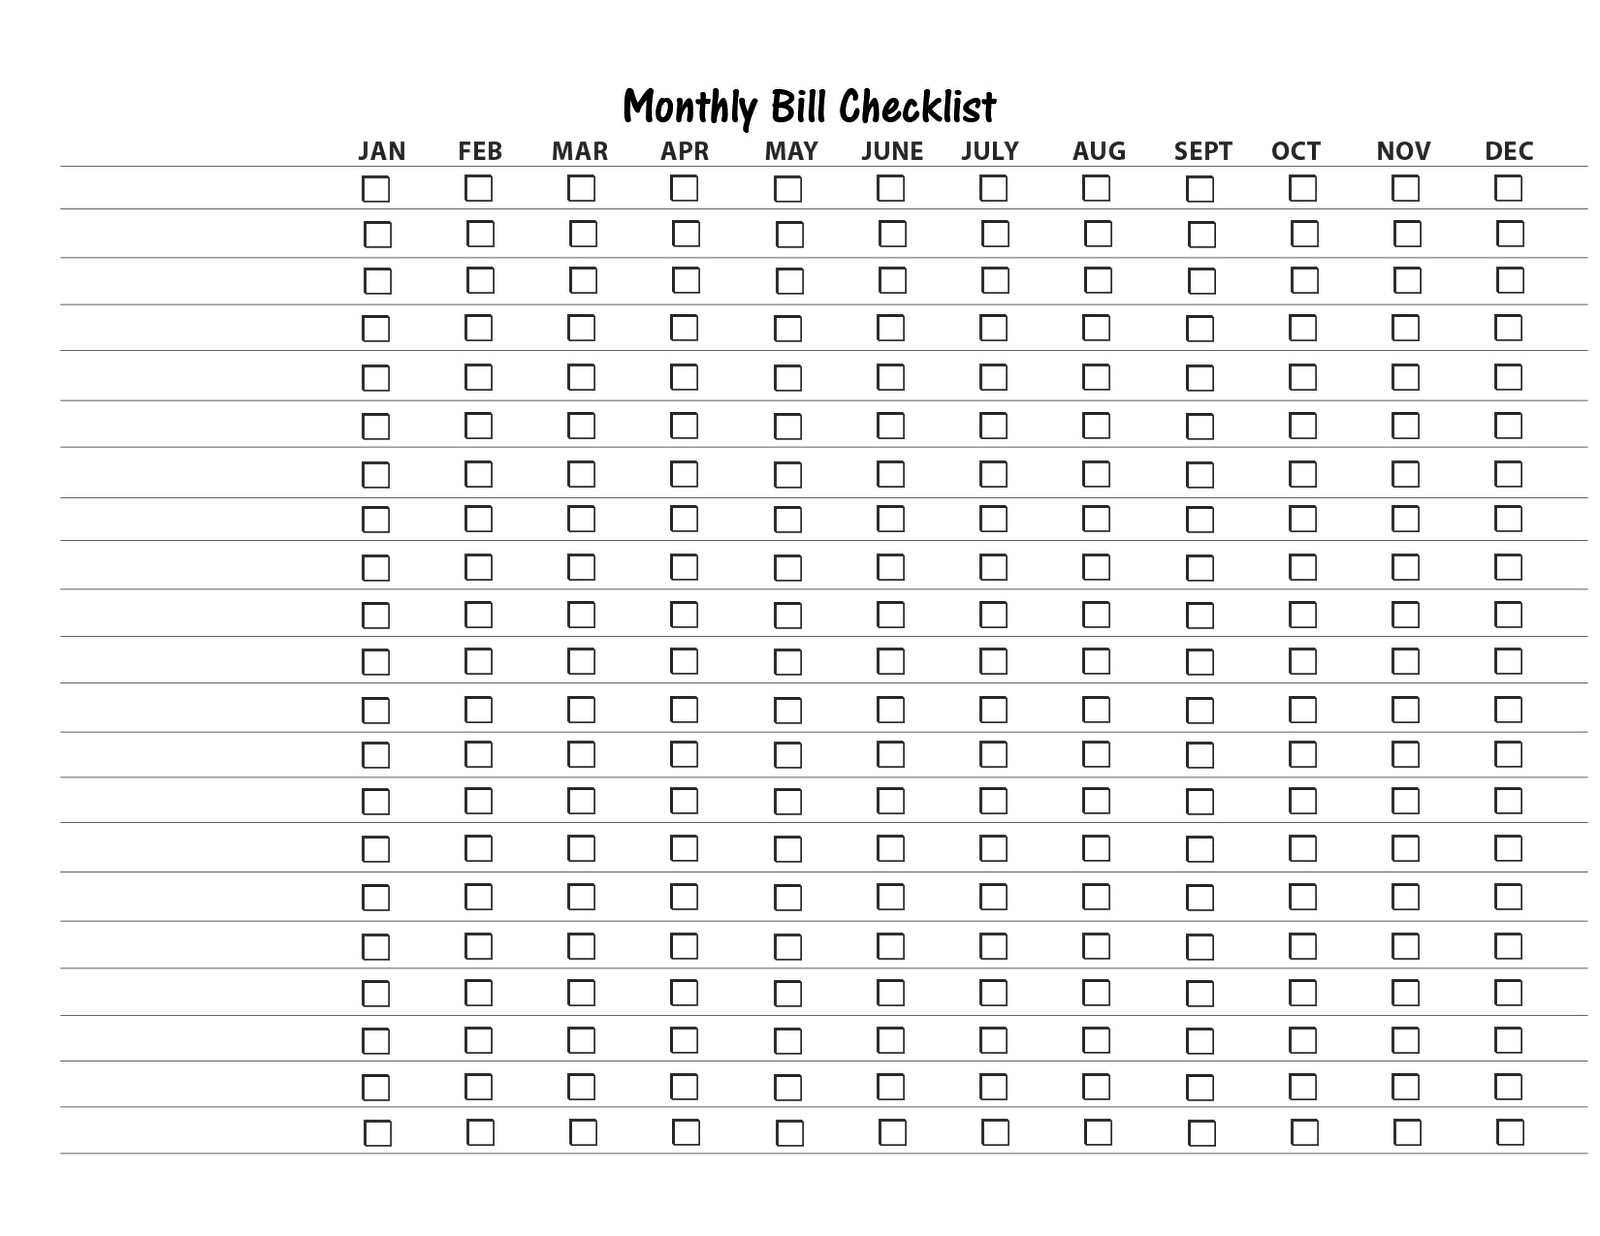 How To Make A Spreadsheet For Monthly Bills_23